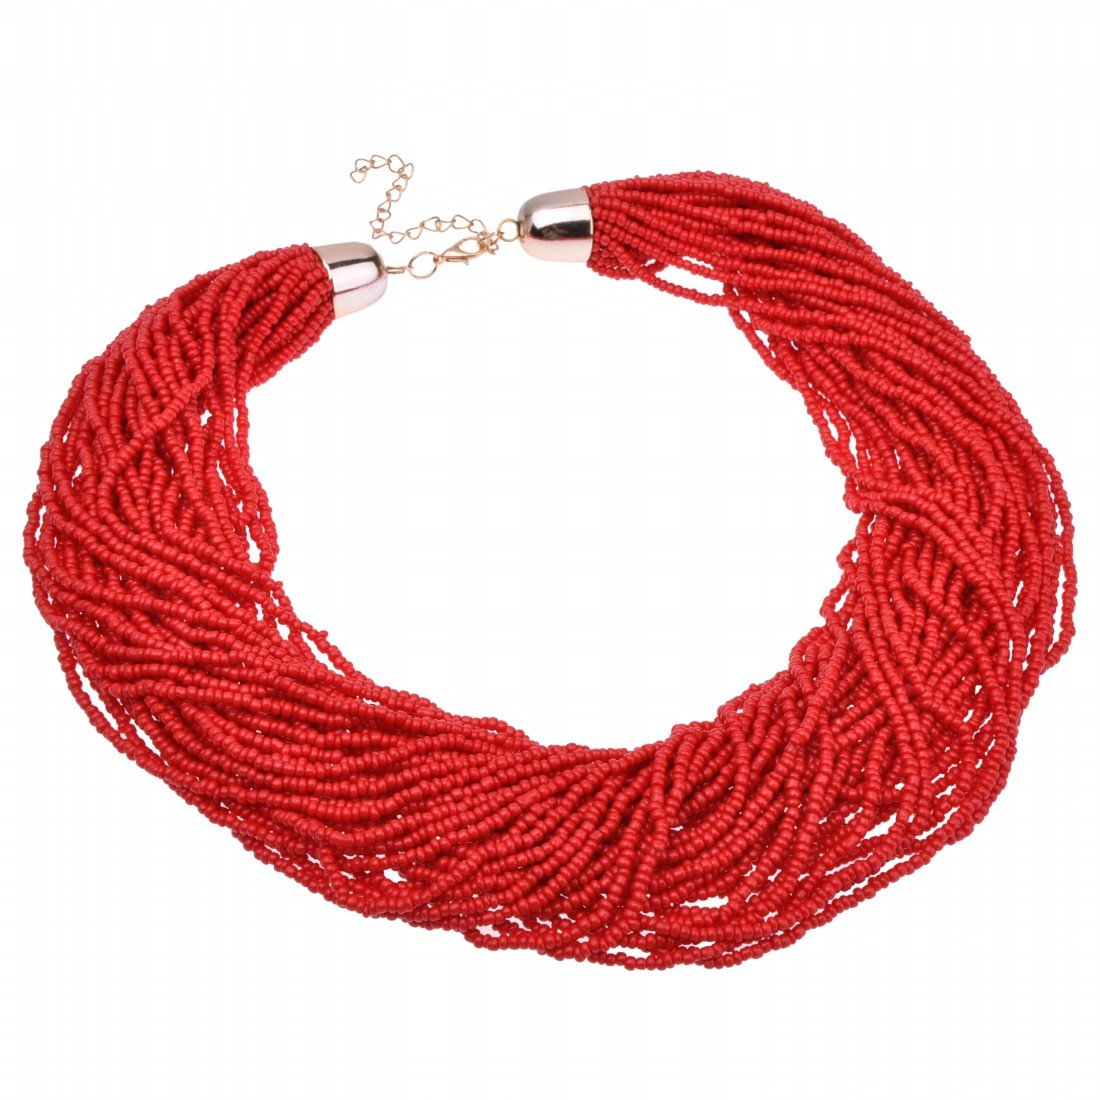 Jerollin Fashion Multilayer Red Seed Bead Cluster Strand Handmade Bib Choker Necklace New